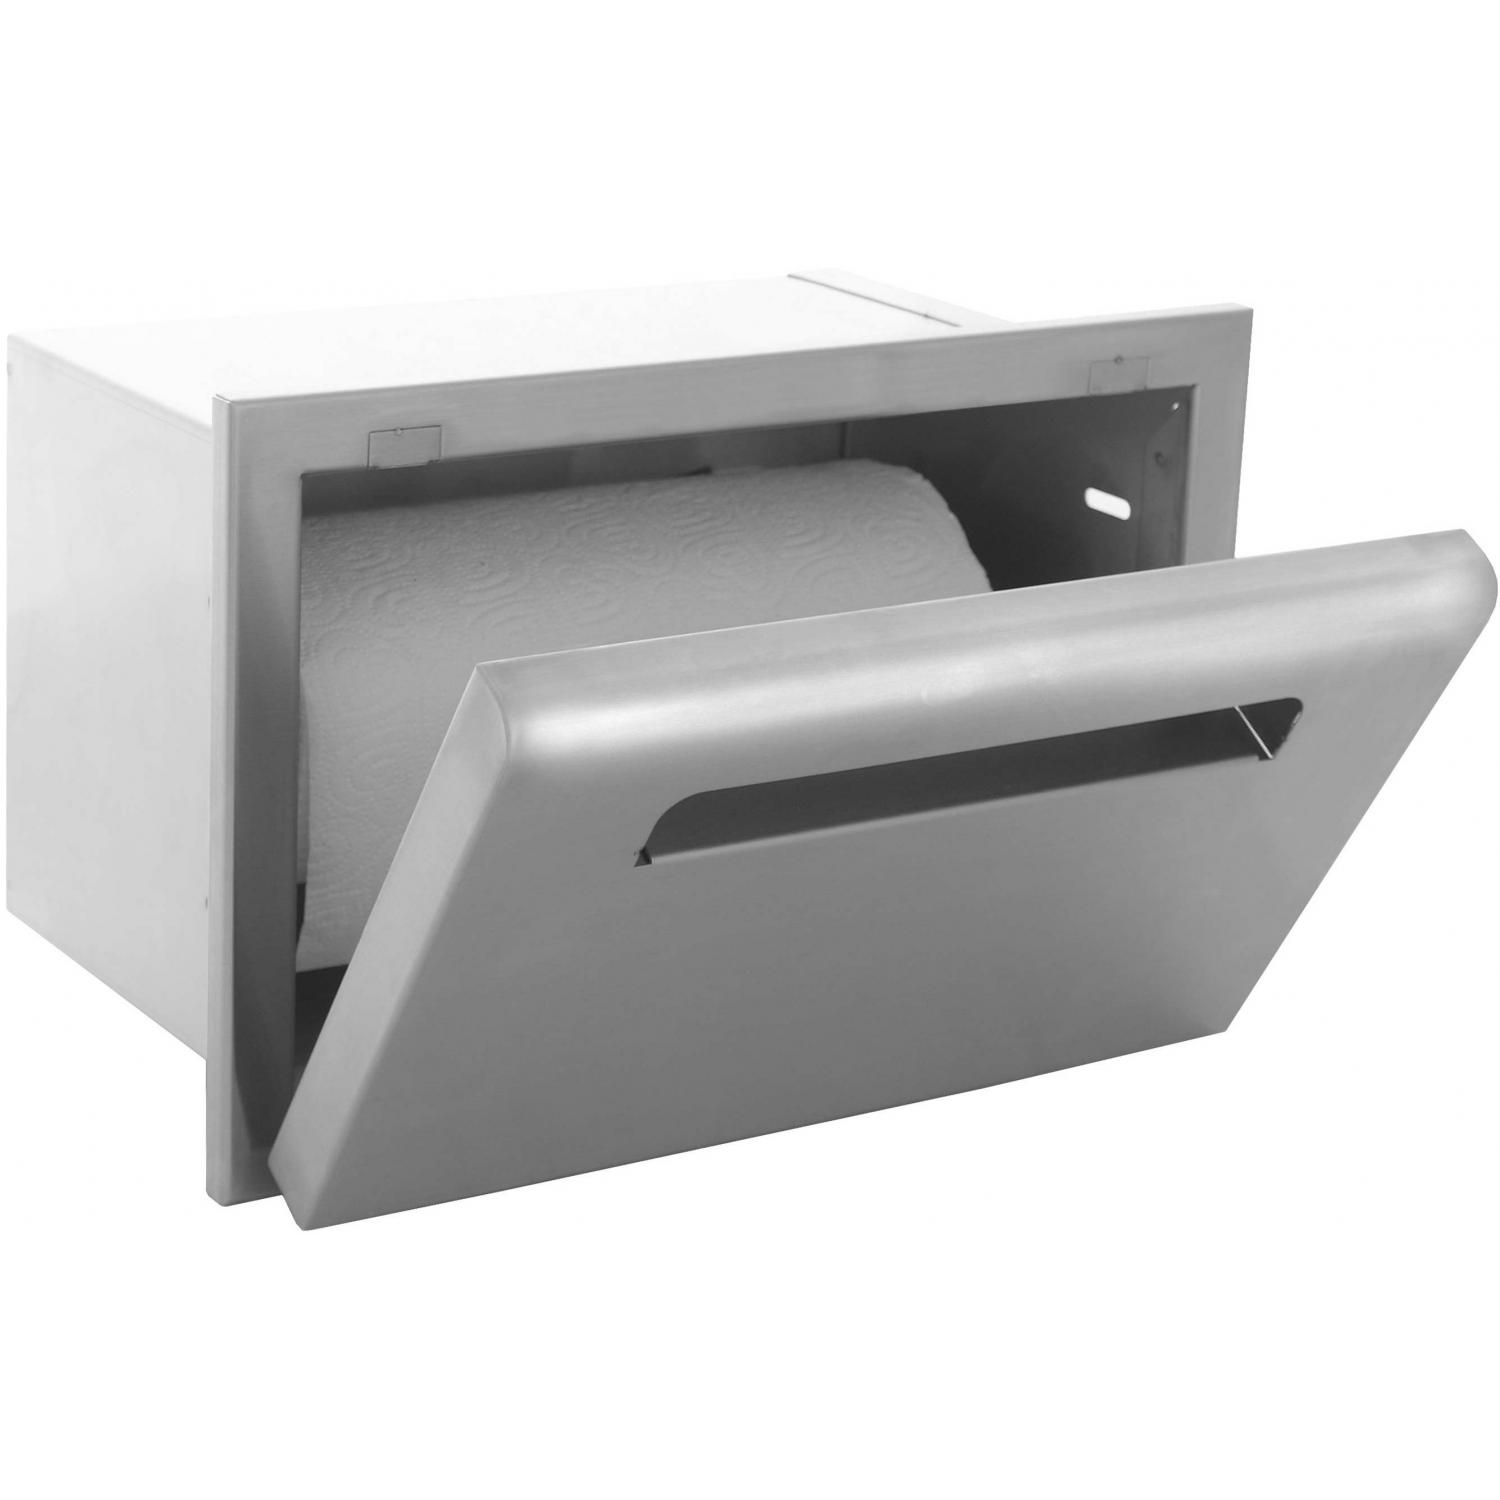 Picture of BBQGuyscom Roma Series Built-In Stainless Steel Paper Towel Dispenser